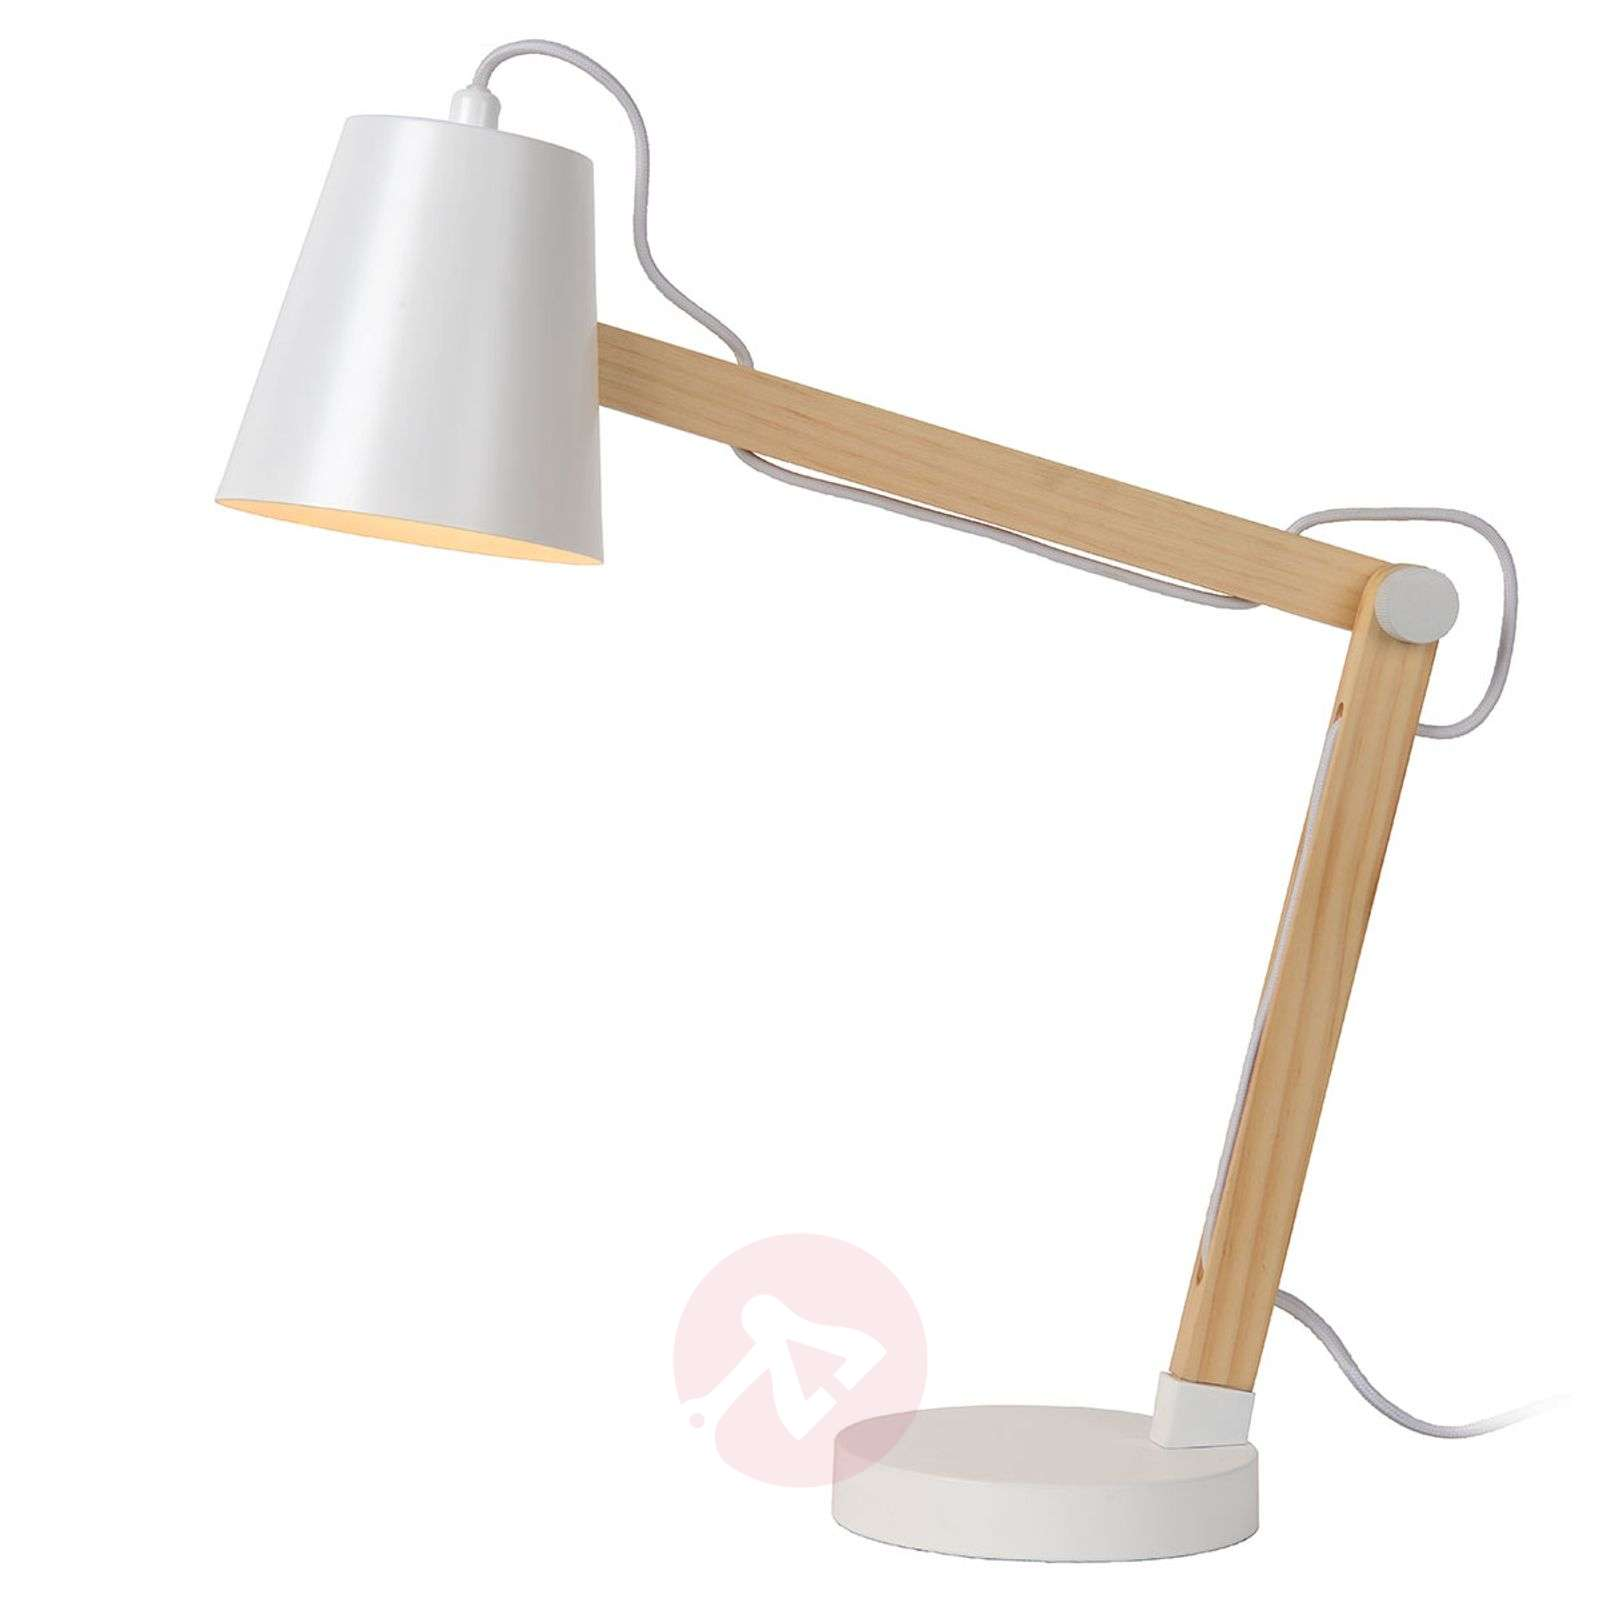 ca9d7a7f5586 Wooden desk lamp Tony - adjustable | Lights.co.uk